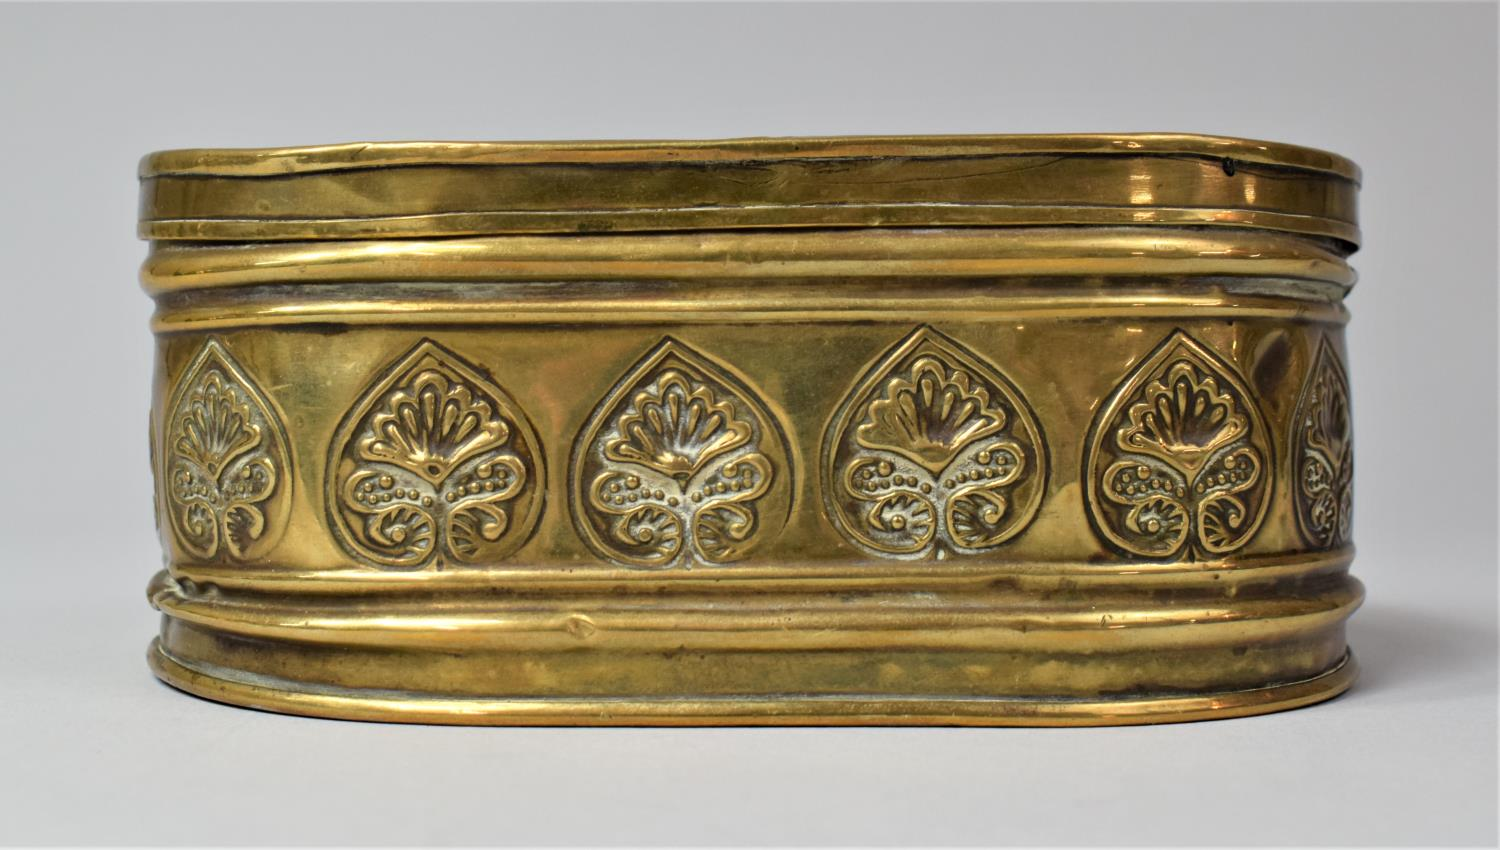 A 19th Century Dutch Brass Oval Two Division Tobacco Box with Hinged Lid, 15.5cm Long - Image 4 of 5